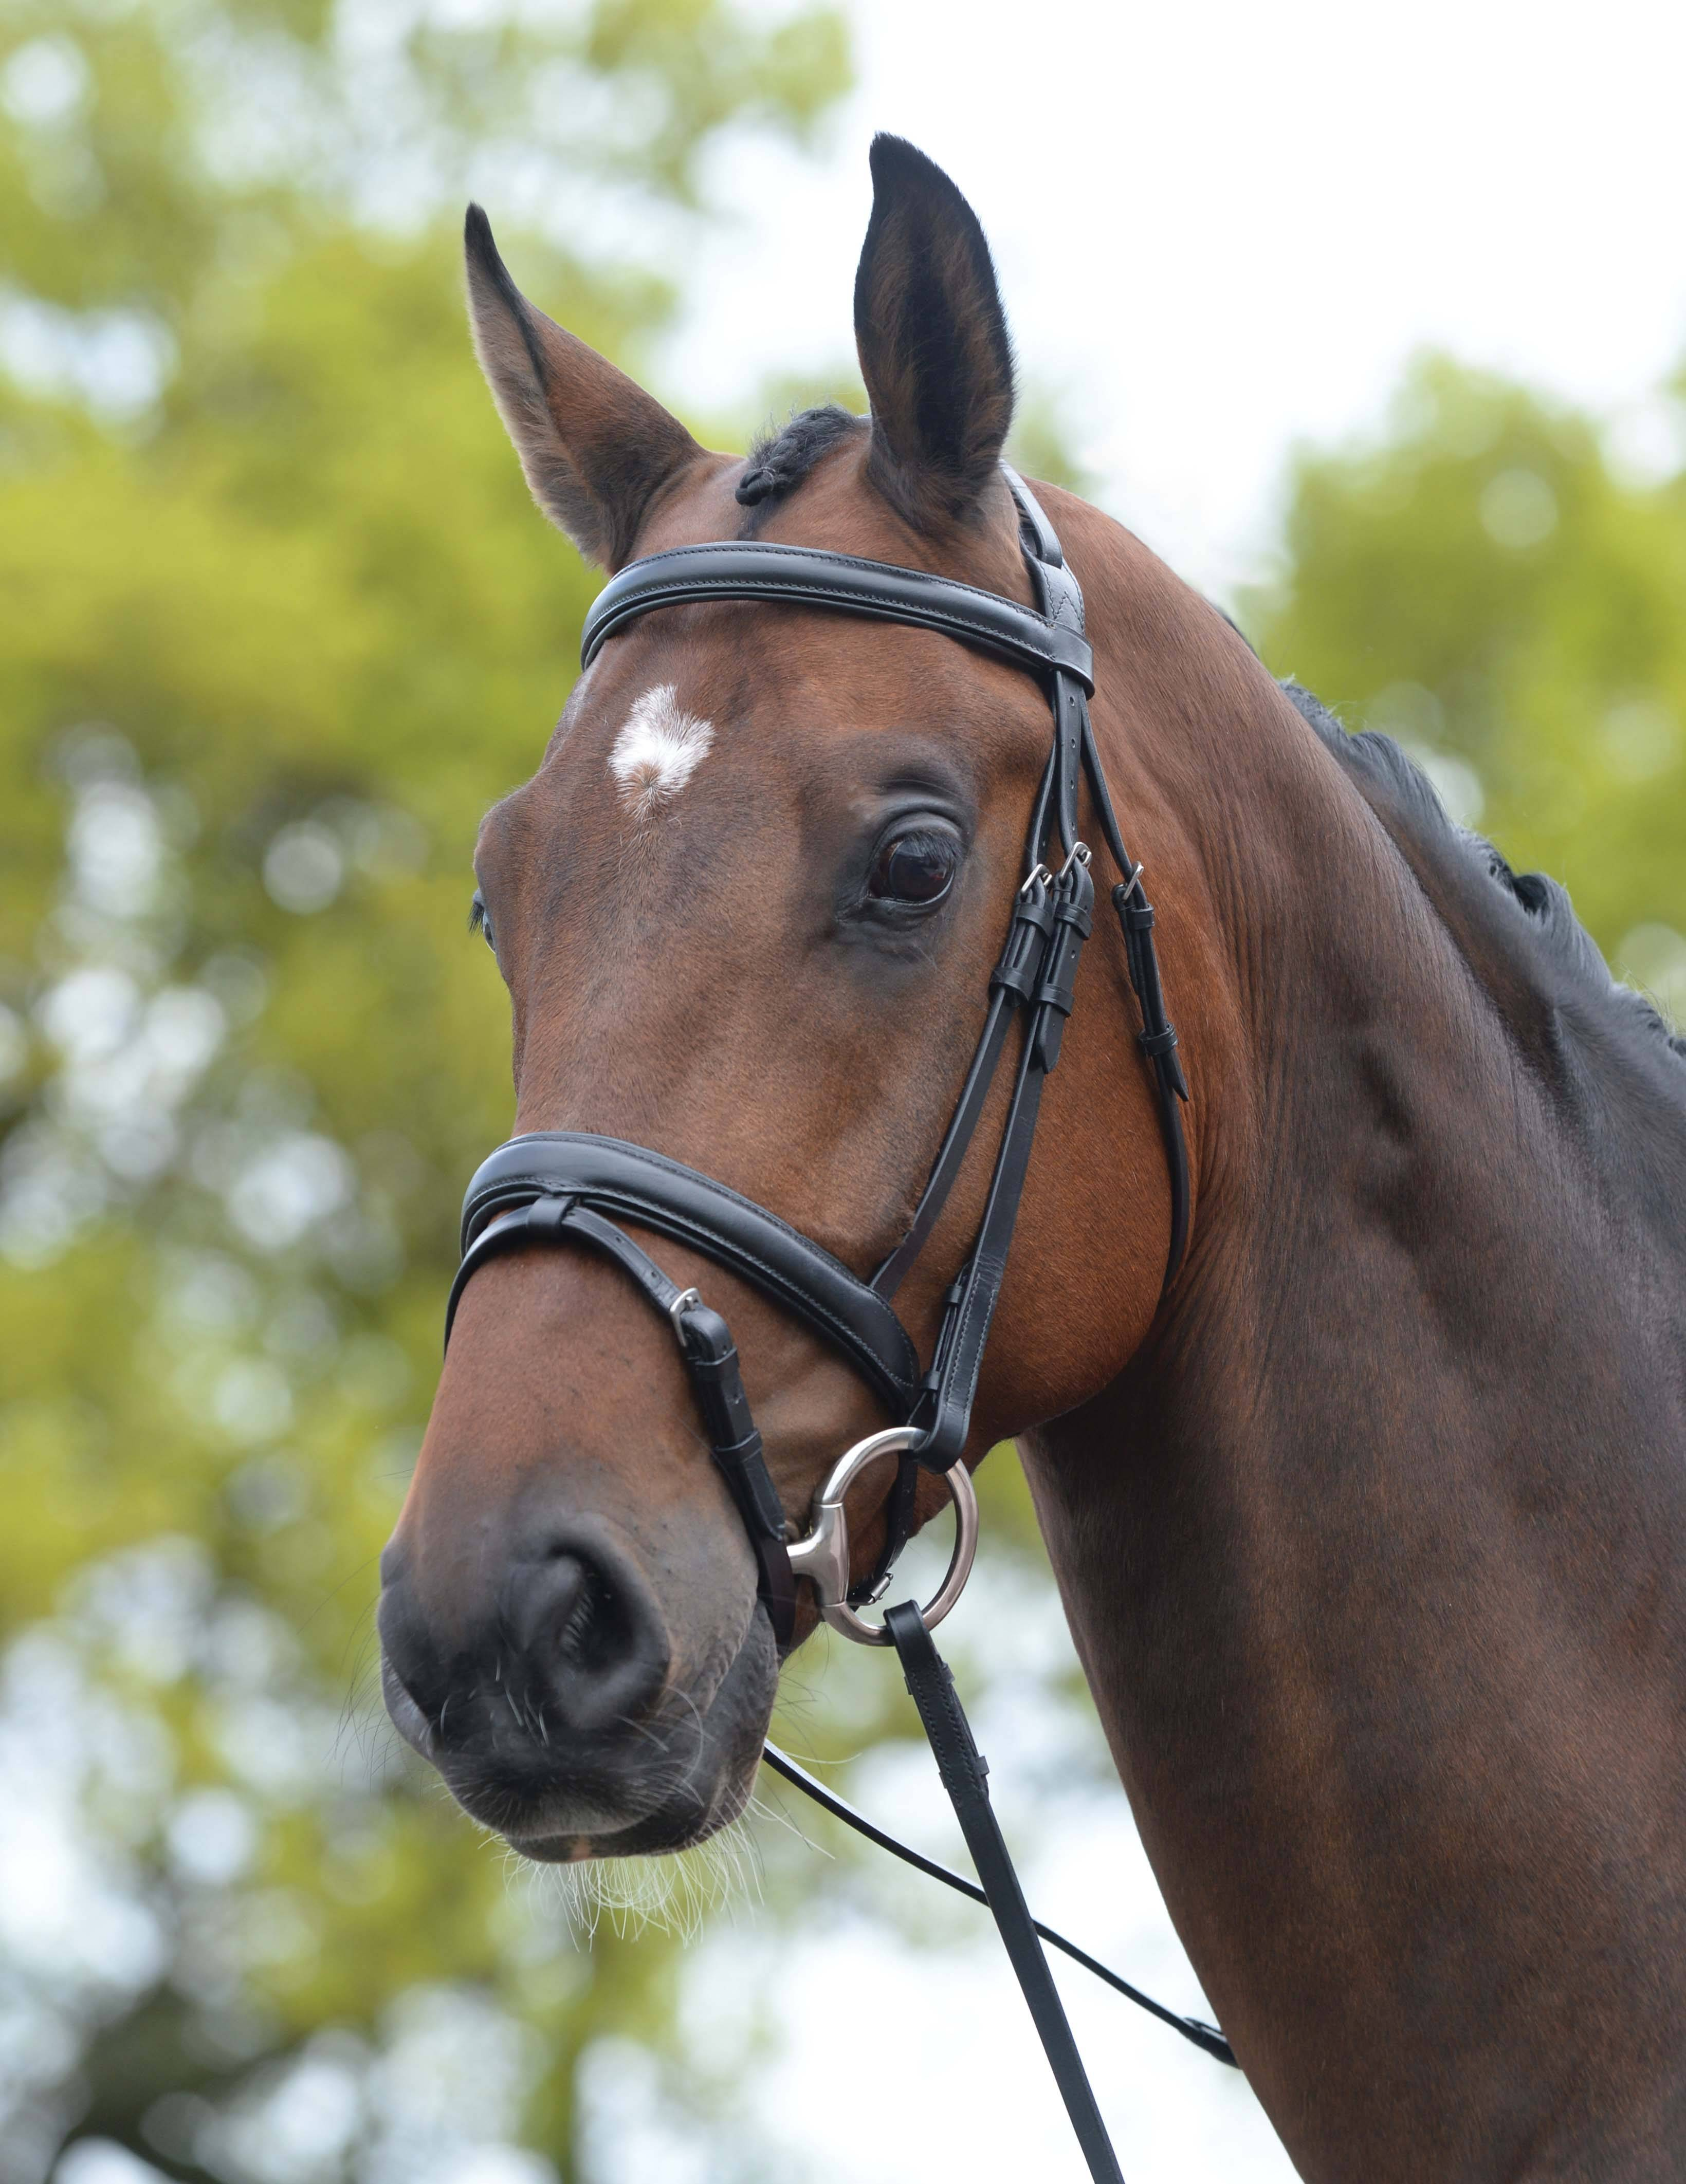 COB OR FULL HYCLASS DELUXE PADDED HEADPIECE FLASH BRIDLE FOR HORSES PONY